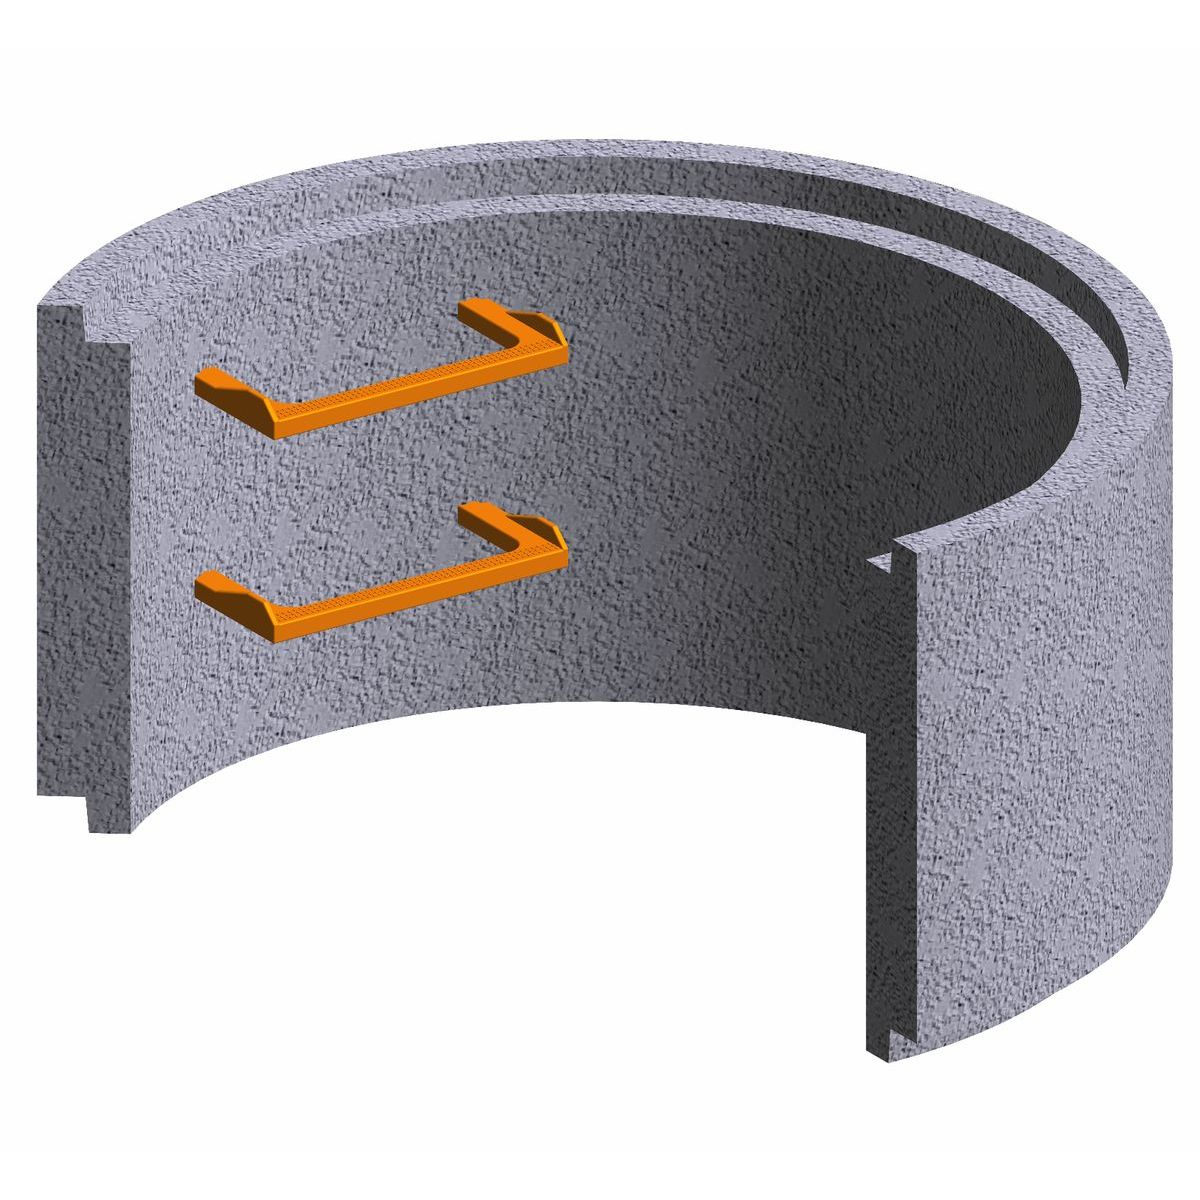 Premanufactured ring of concrete for wells 100x50